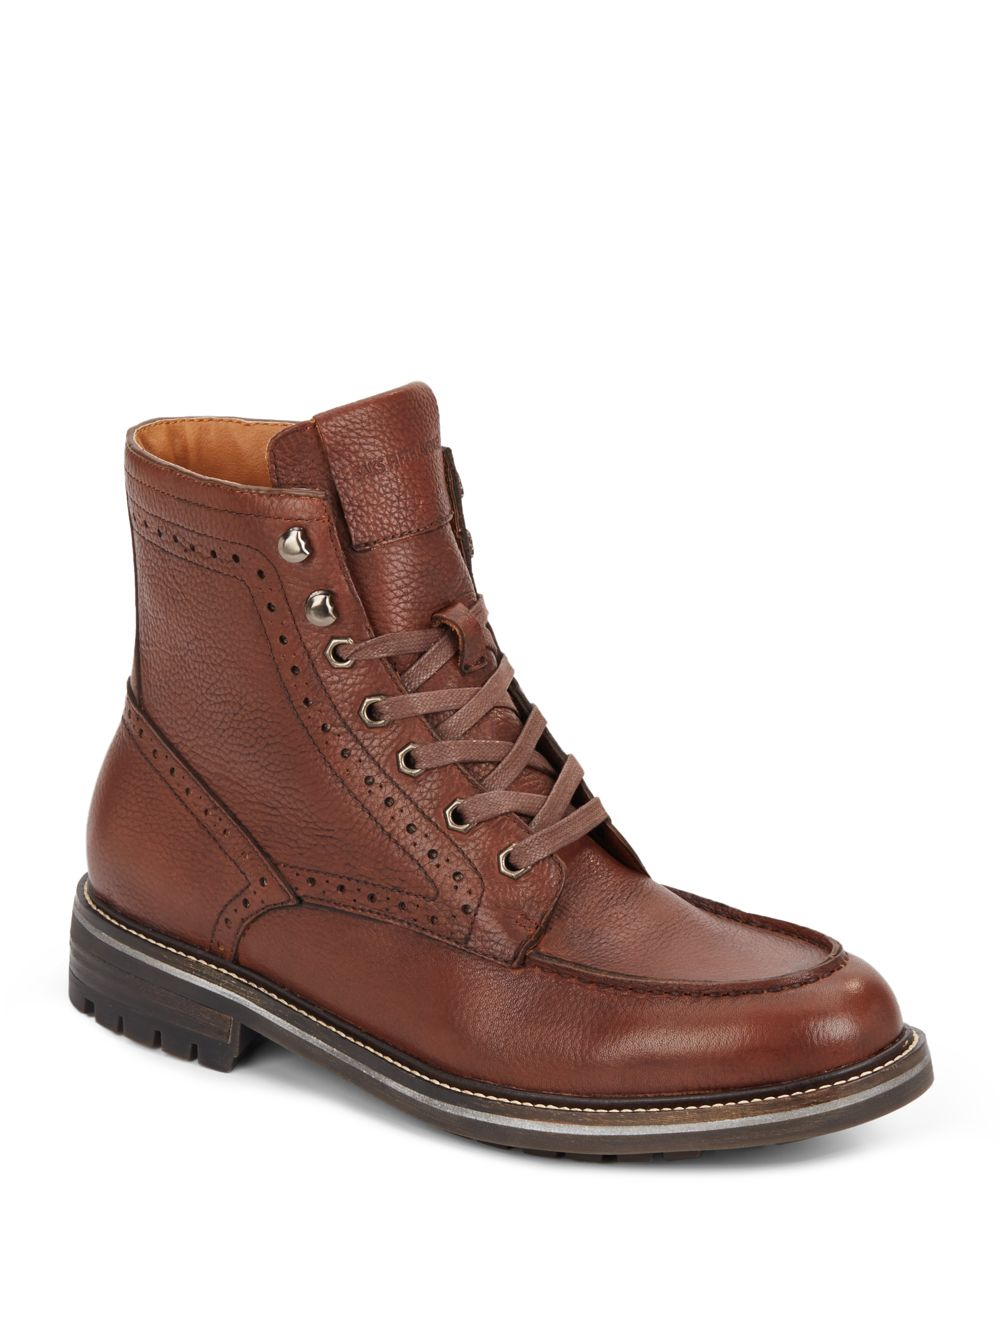 saks fifth avenue rick leather boots in brown for lyst